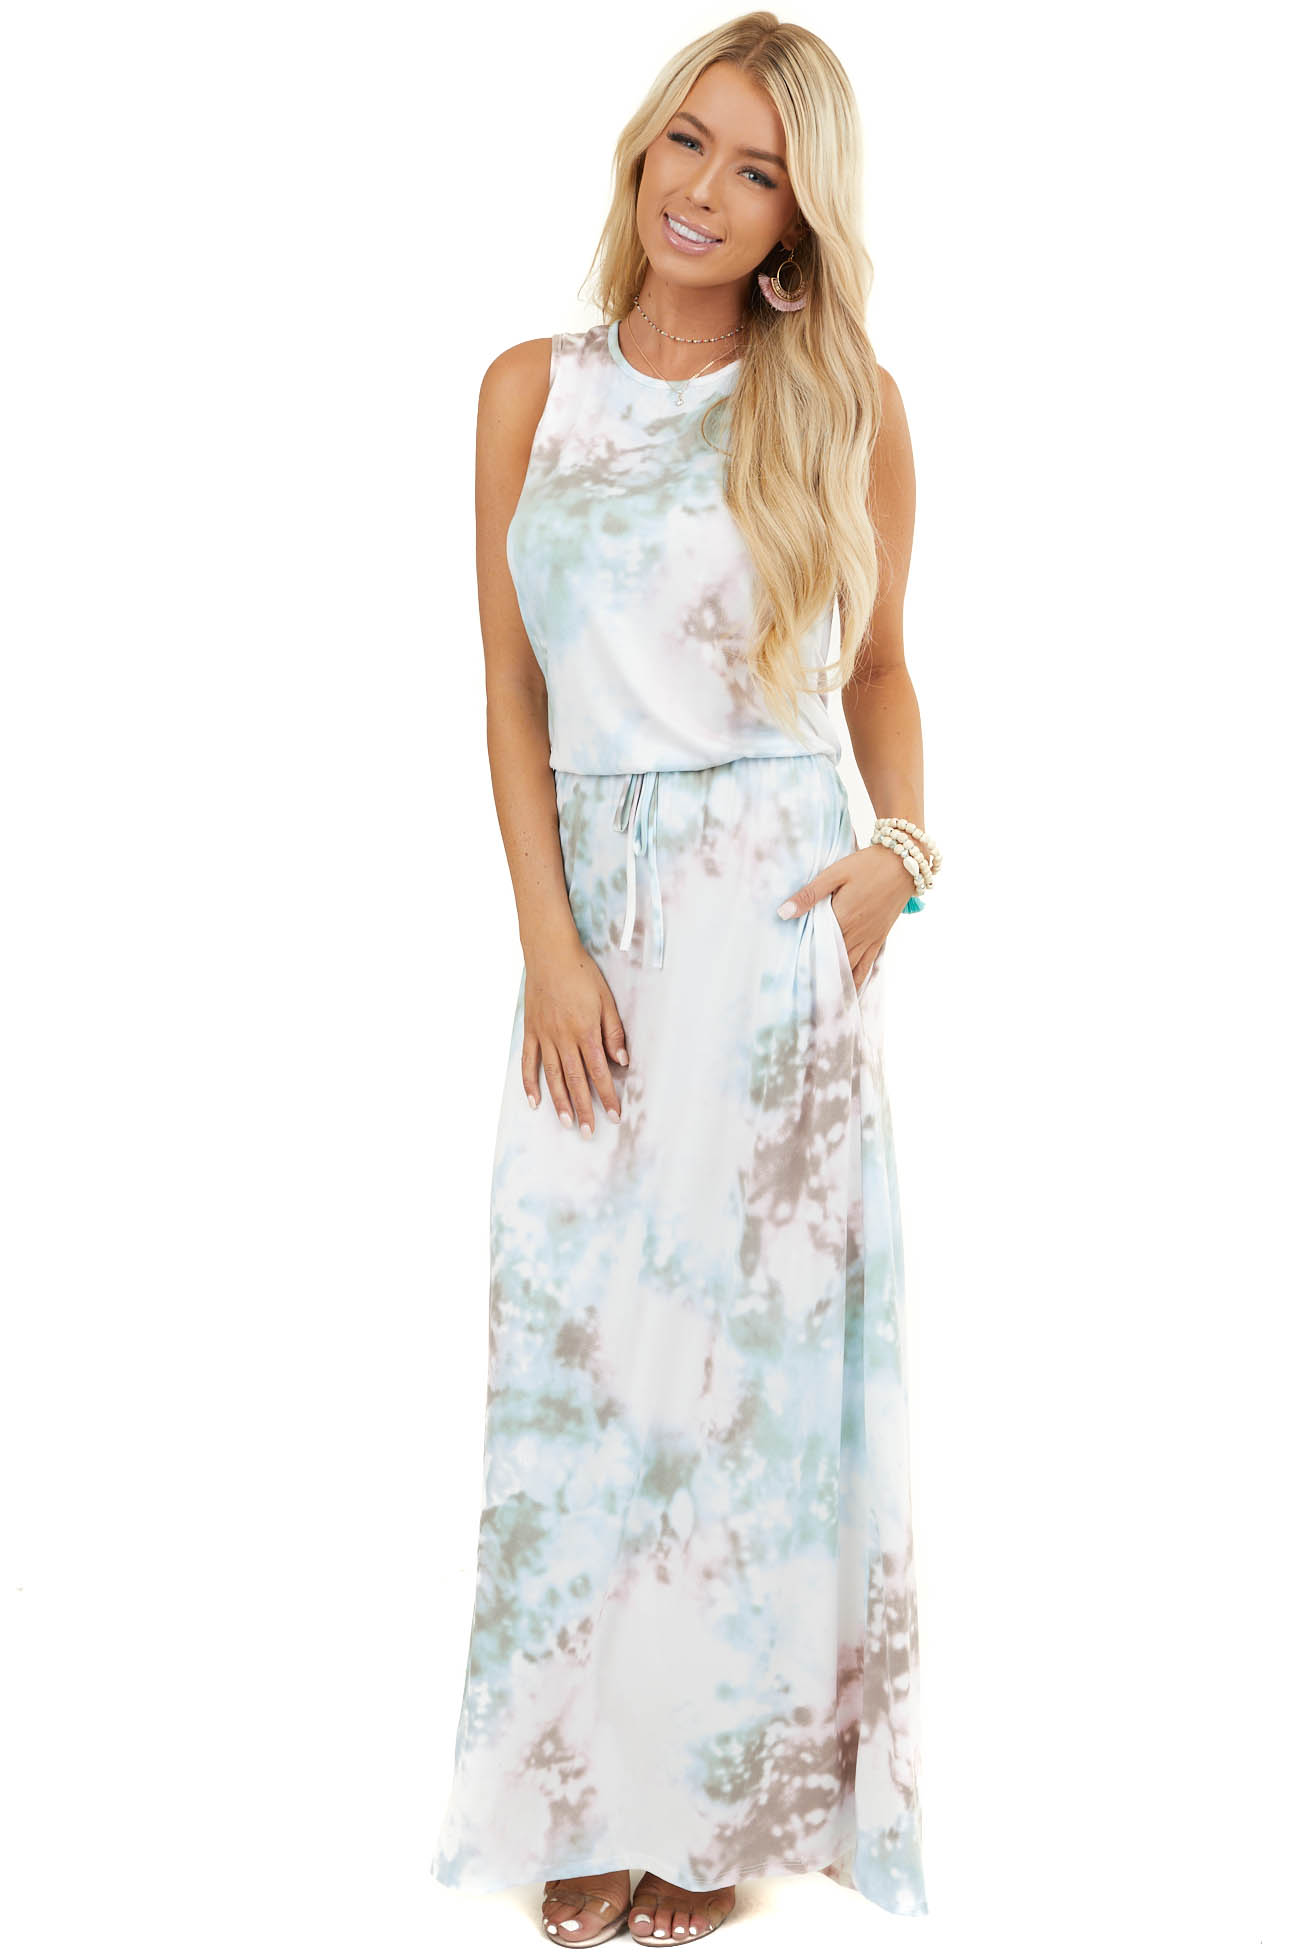 Taupe Multicolor Tie Dye Sleeveless Maxi Dress with Pockets